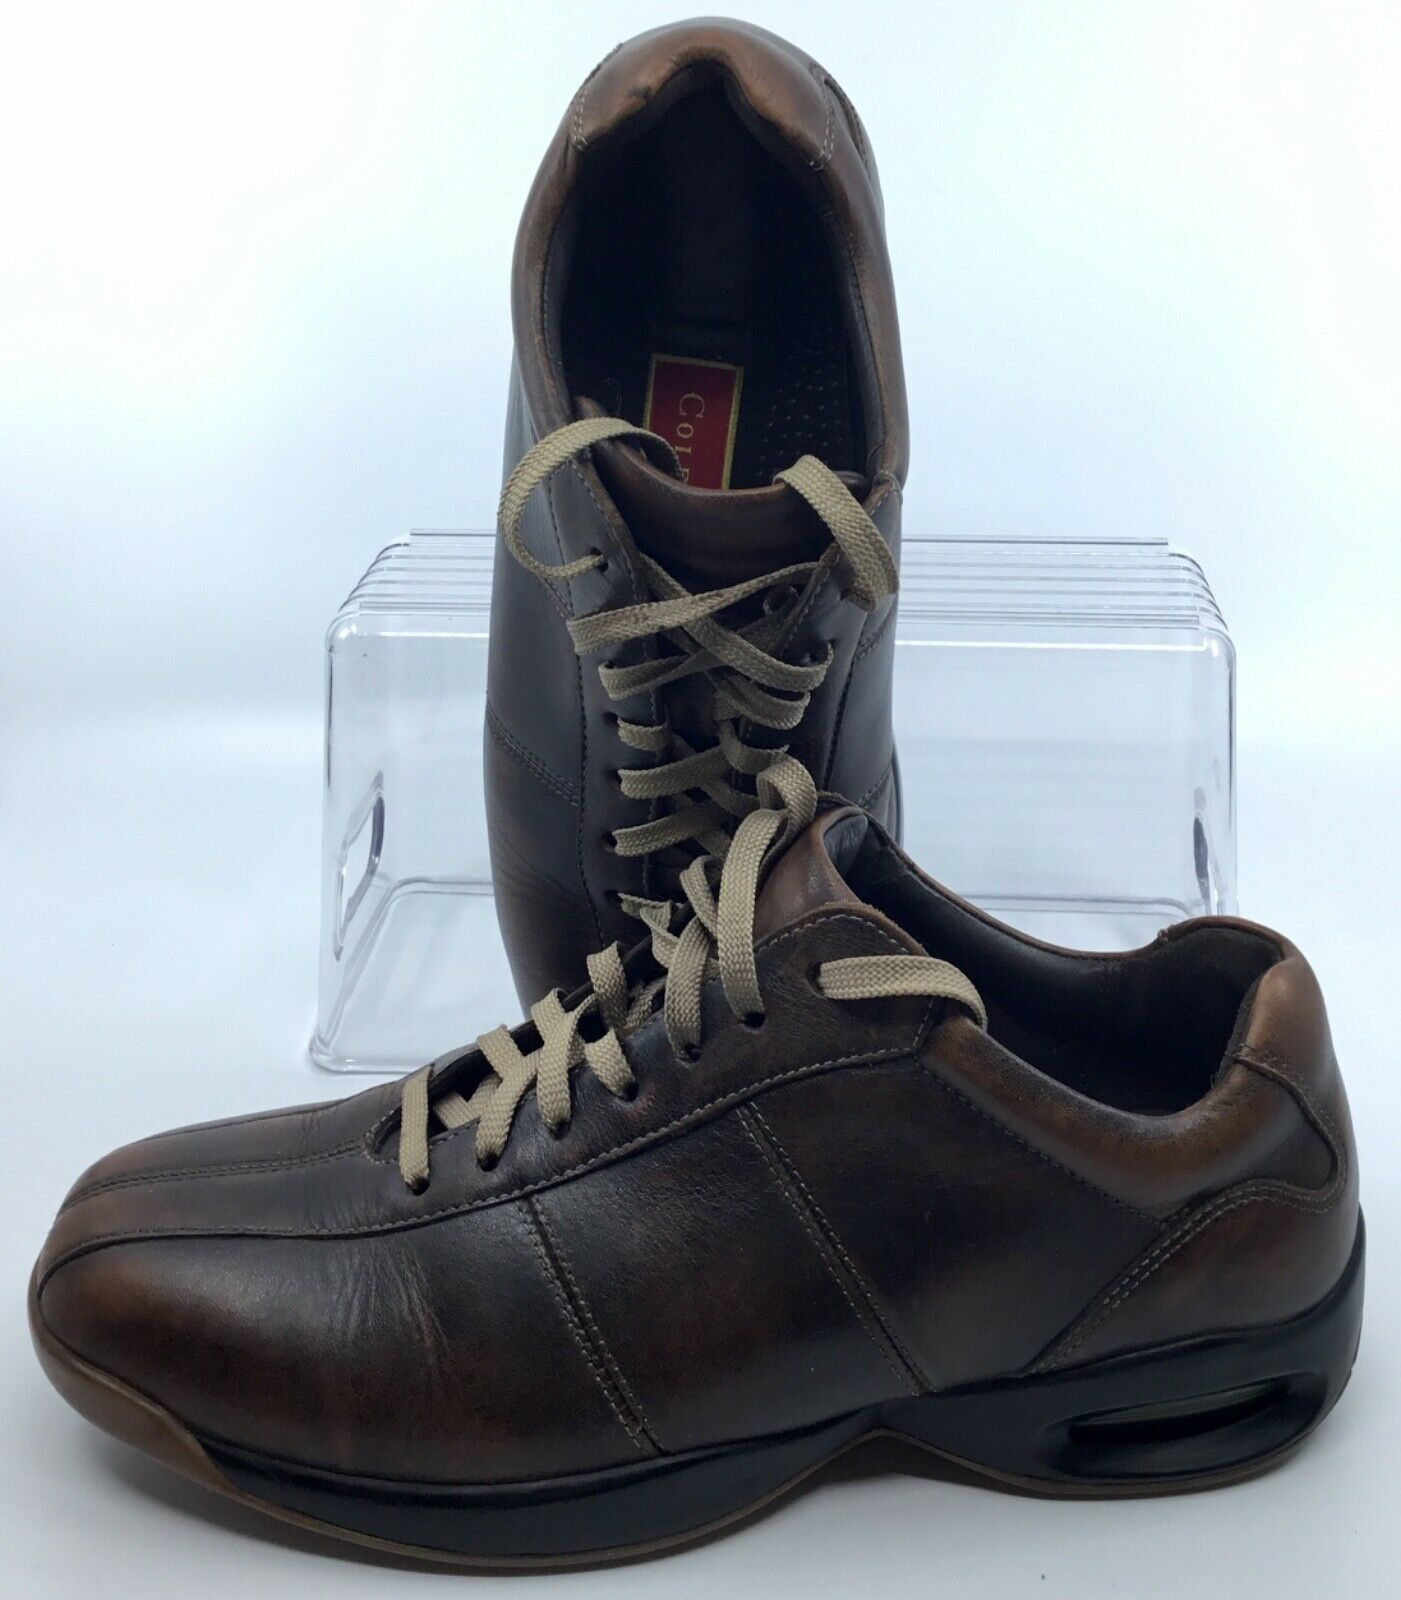 Cole Haan Air Walking shoes Mens 7 M Brown Bicycle Toe Lace Up Athletic Sneakers